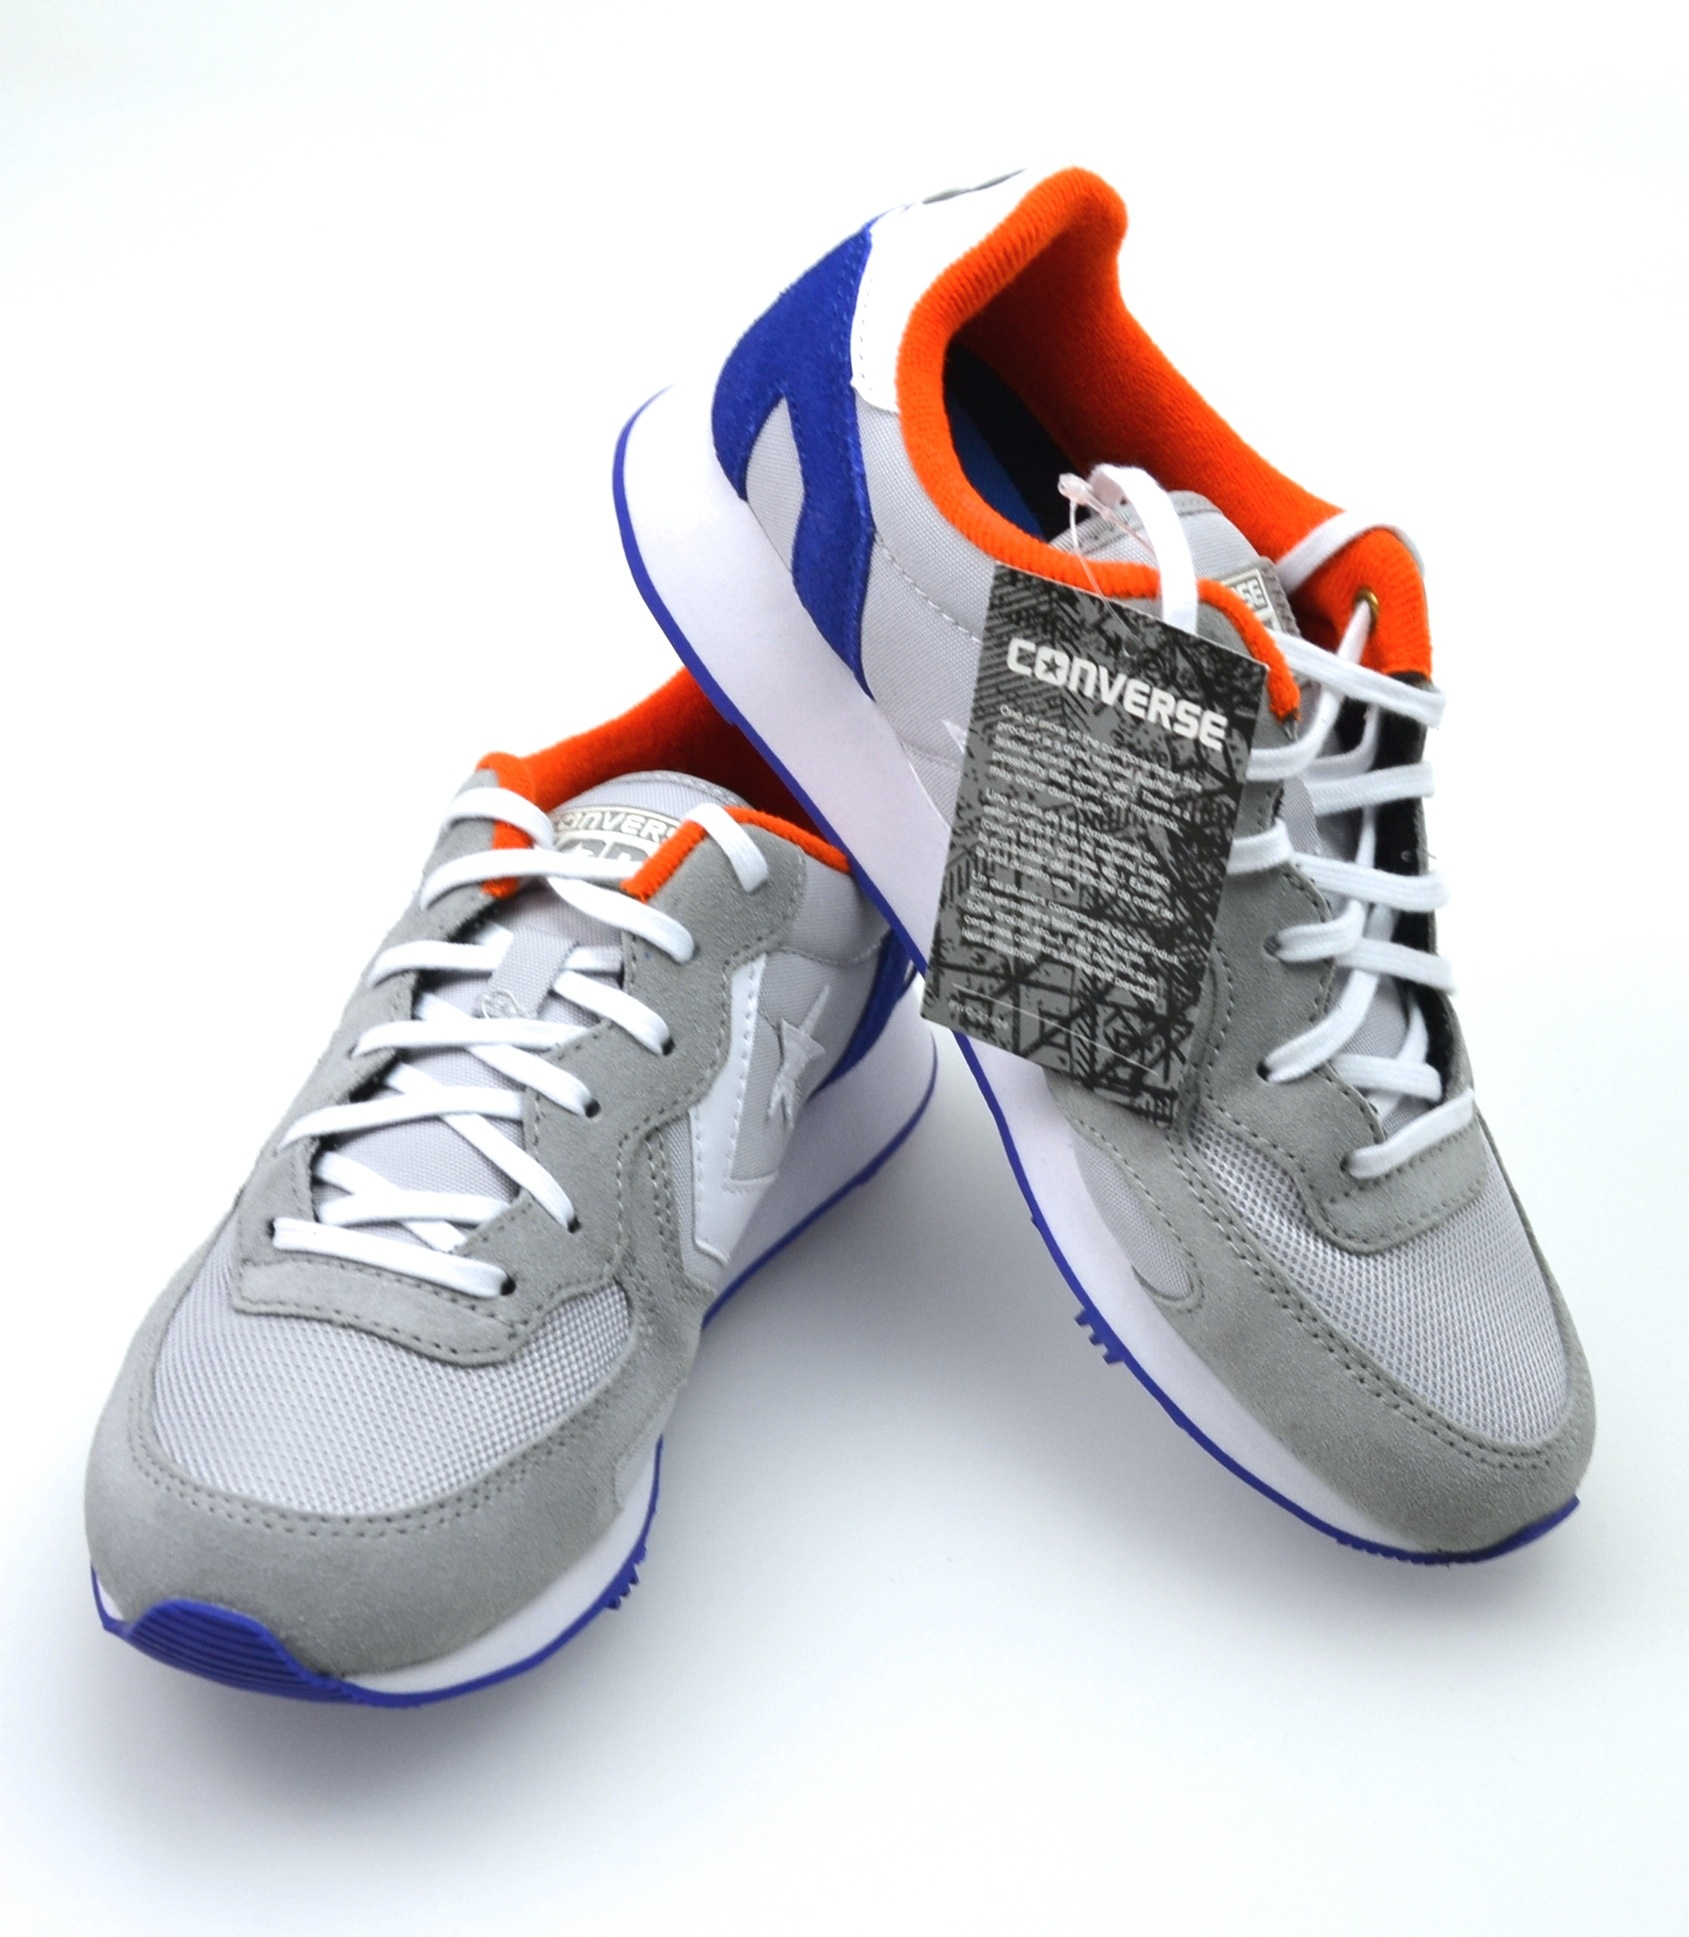 148544C gray shoes CONVERSE unisex woman man auckland racer